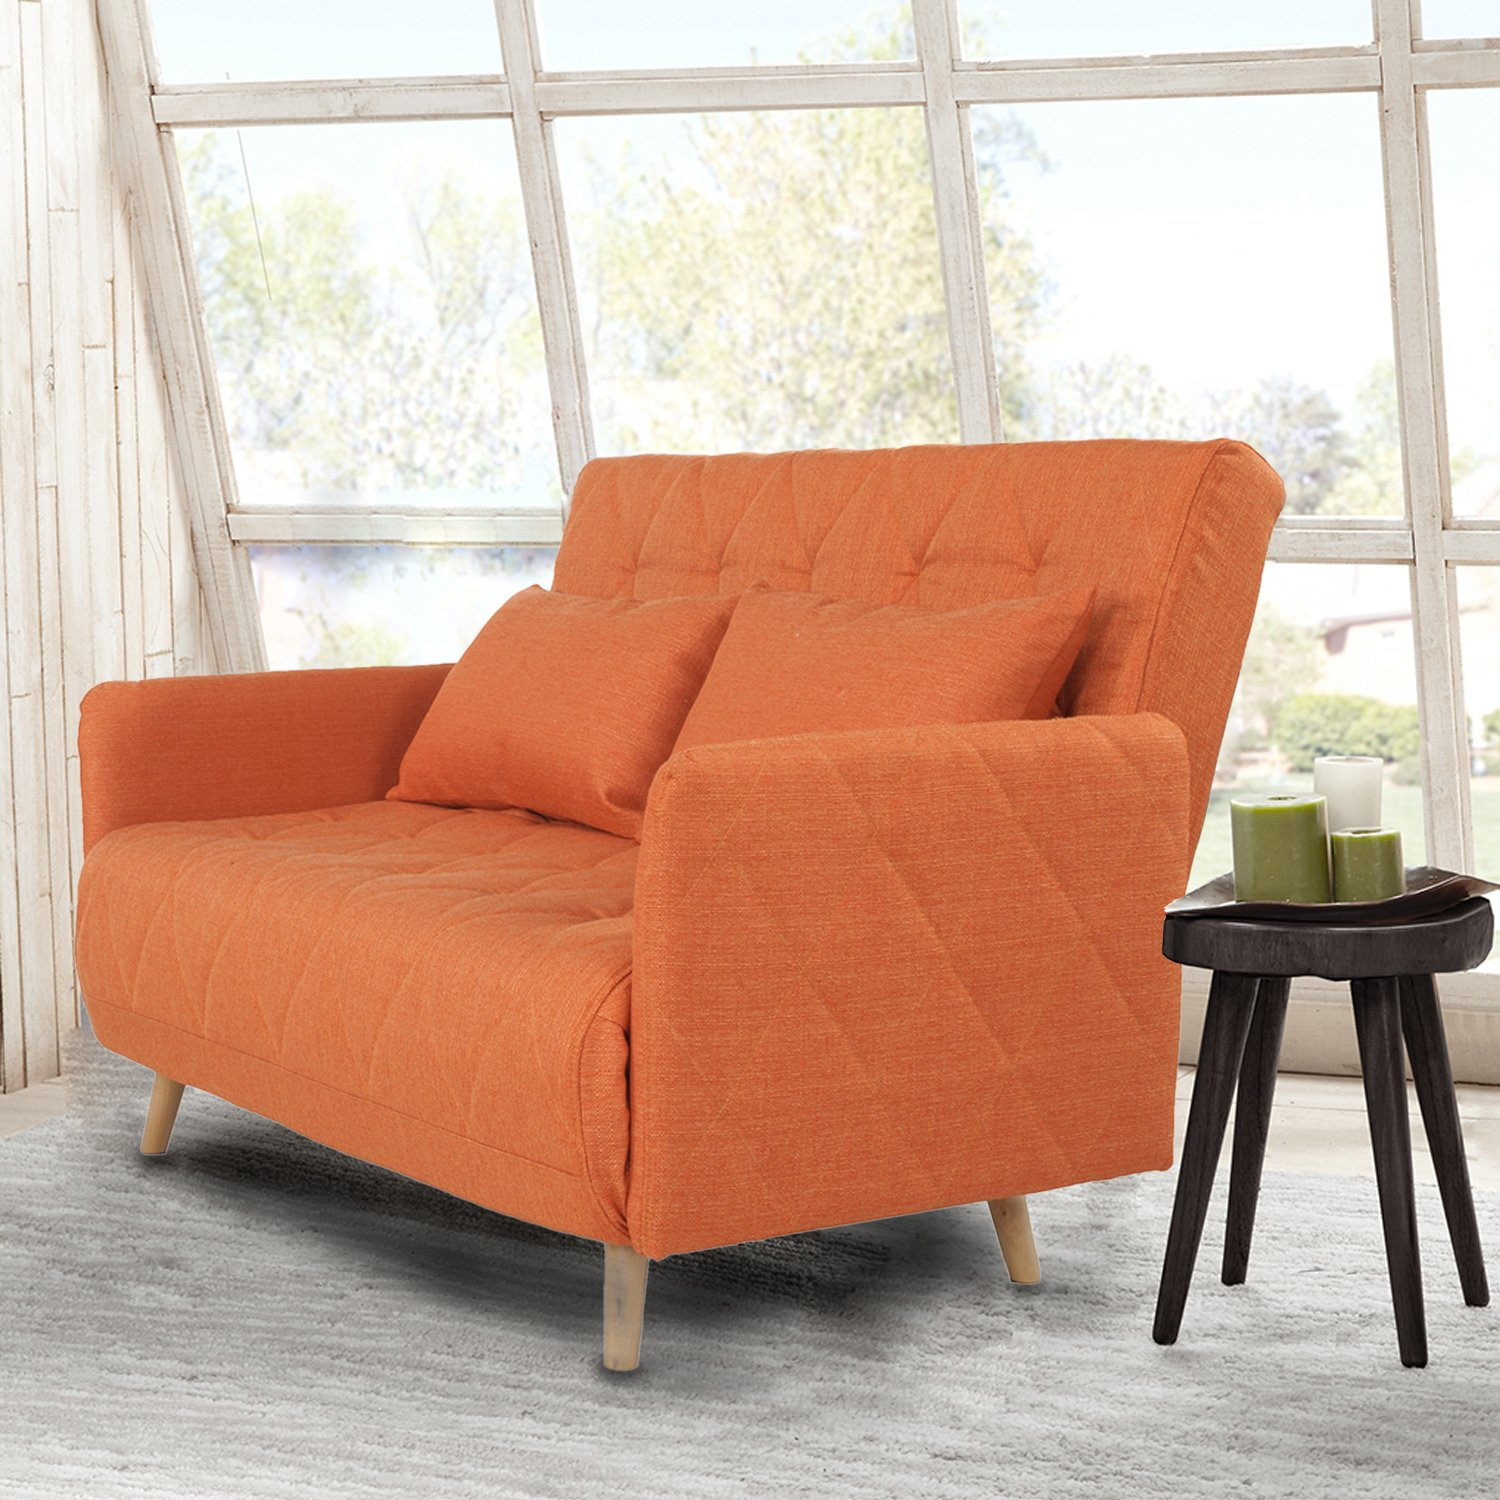 Amazon Adeco Fabric Fiber Sofa Bed Sofabed Lounge with Arm